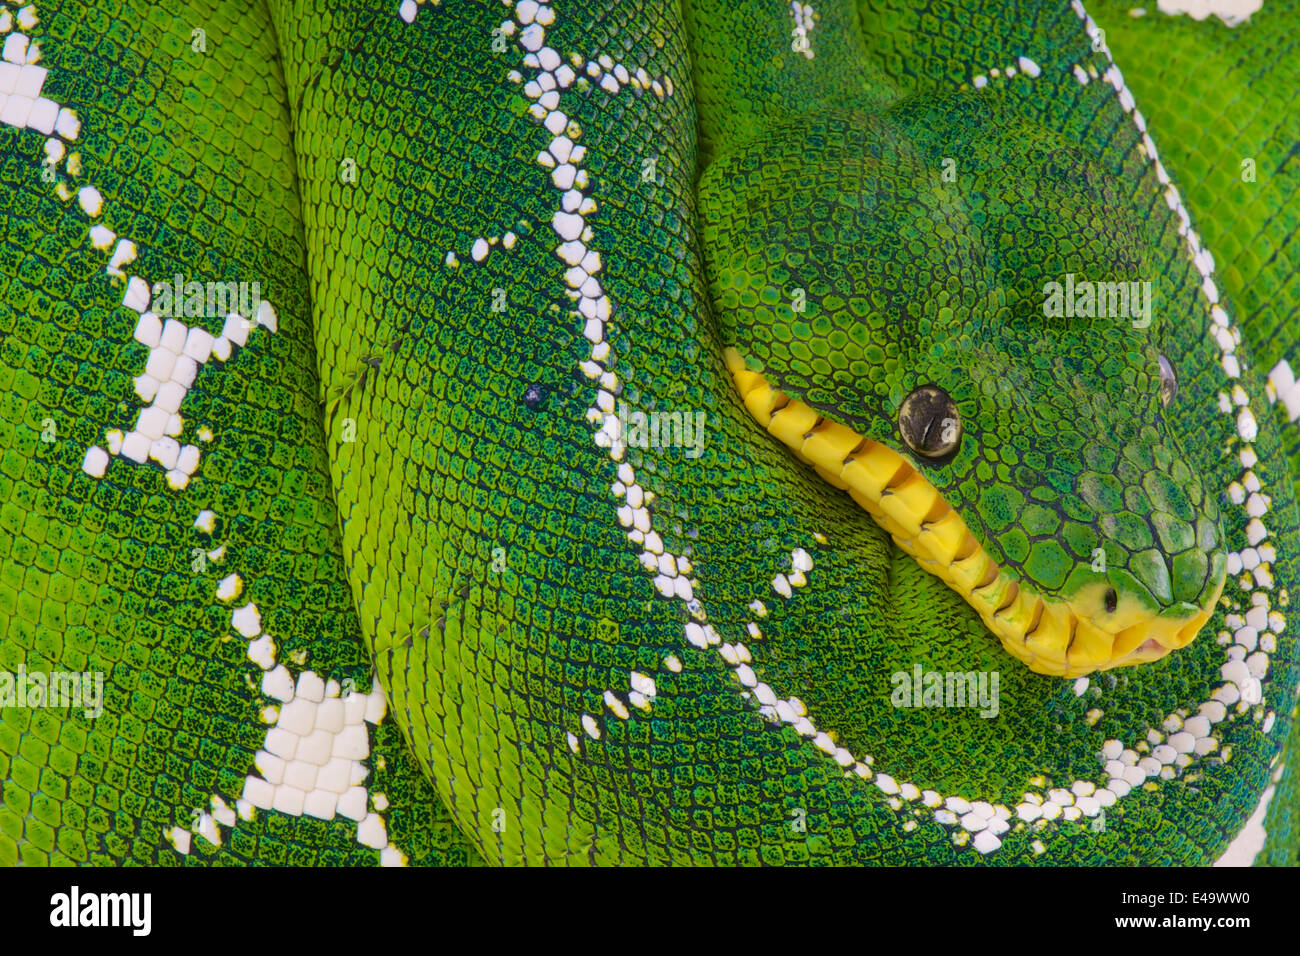 Amazon Tree Boa Stock Photos & Amazon Tree Boa Stock Images - Alamy